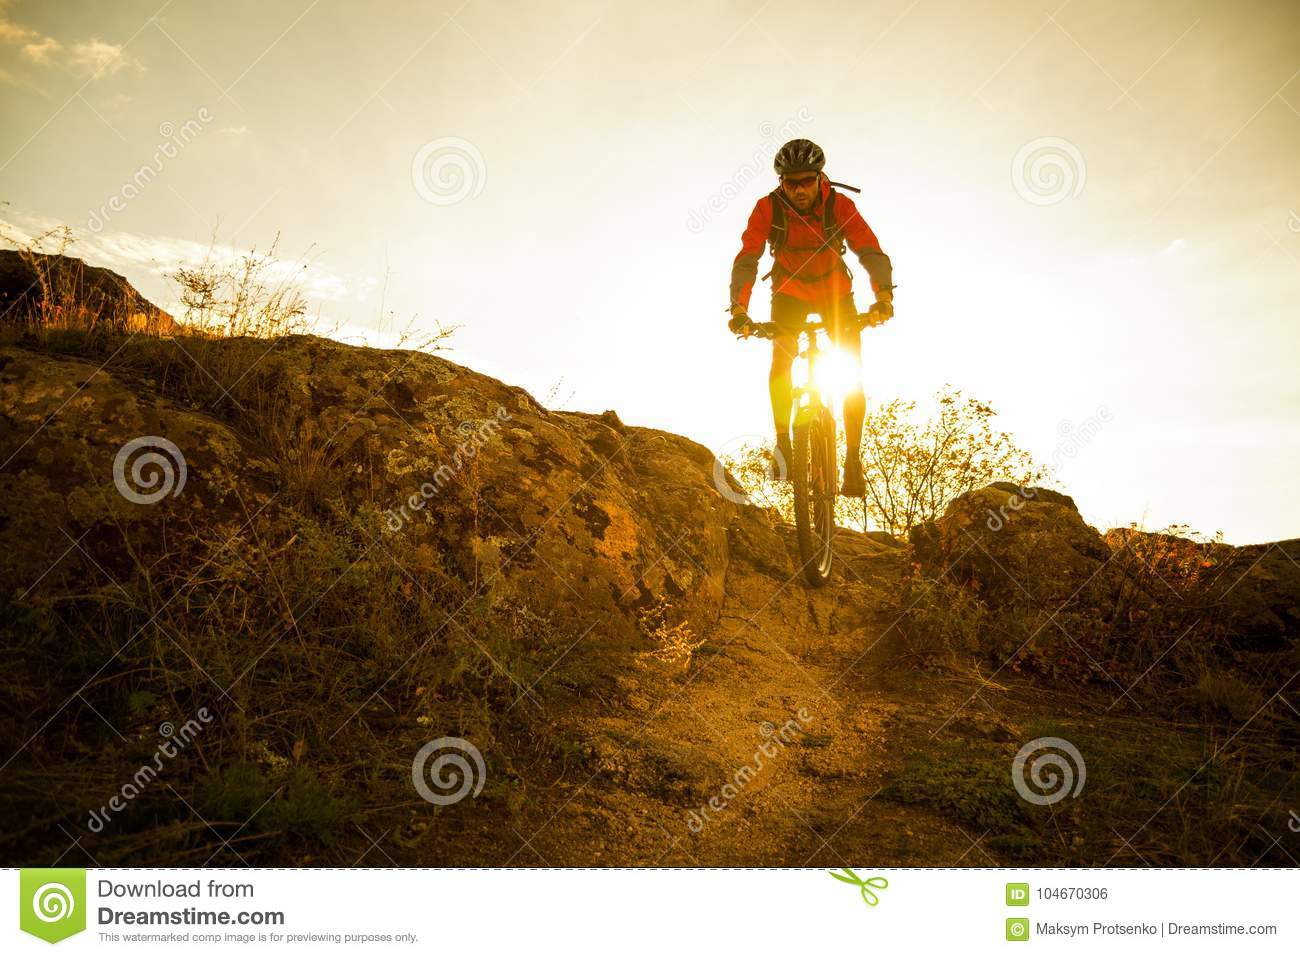 Download Cyclist In Red Riding The Bike On Autumn Rocky Trail At Sunset. Extreme Sport And Enduro Biking Concept. Stock Photo - Image of gold, outside: 104670306